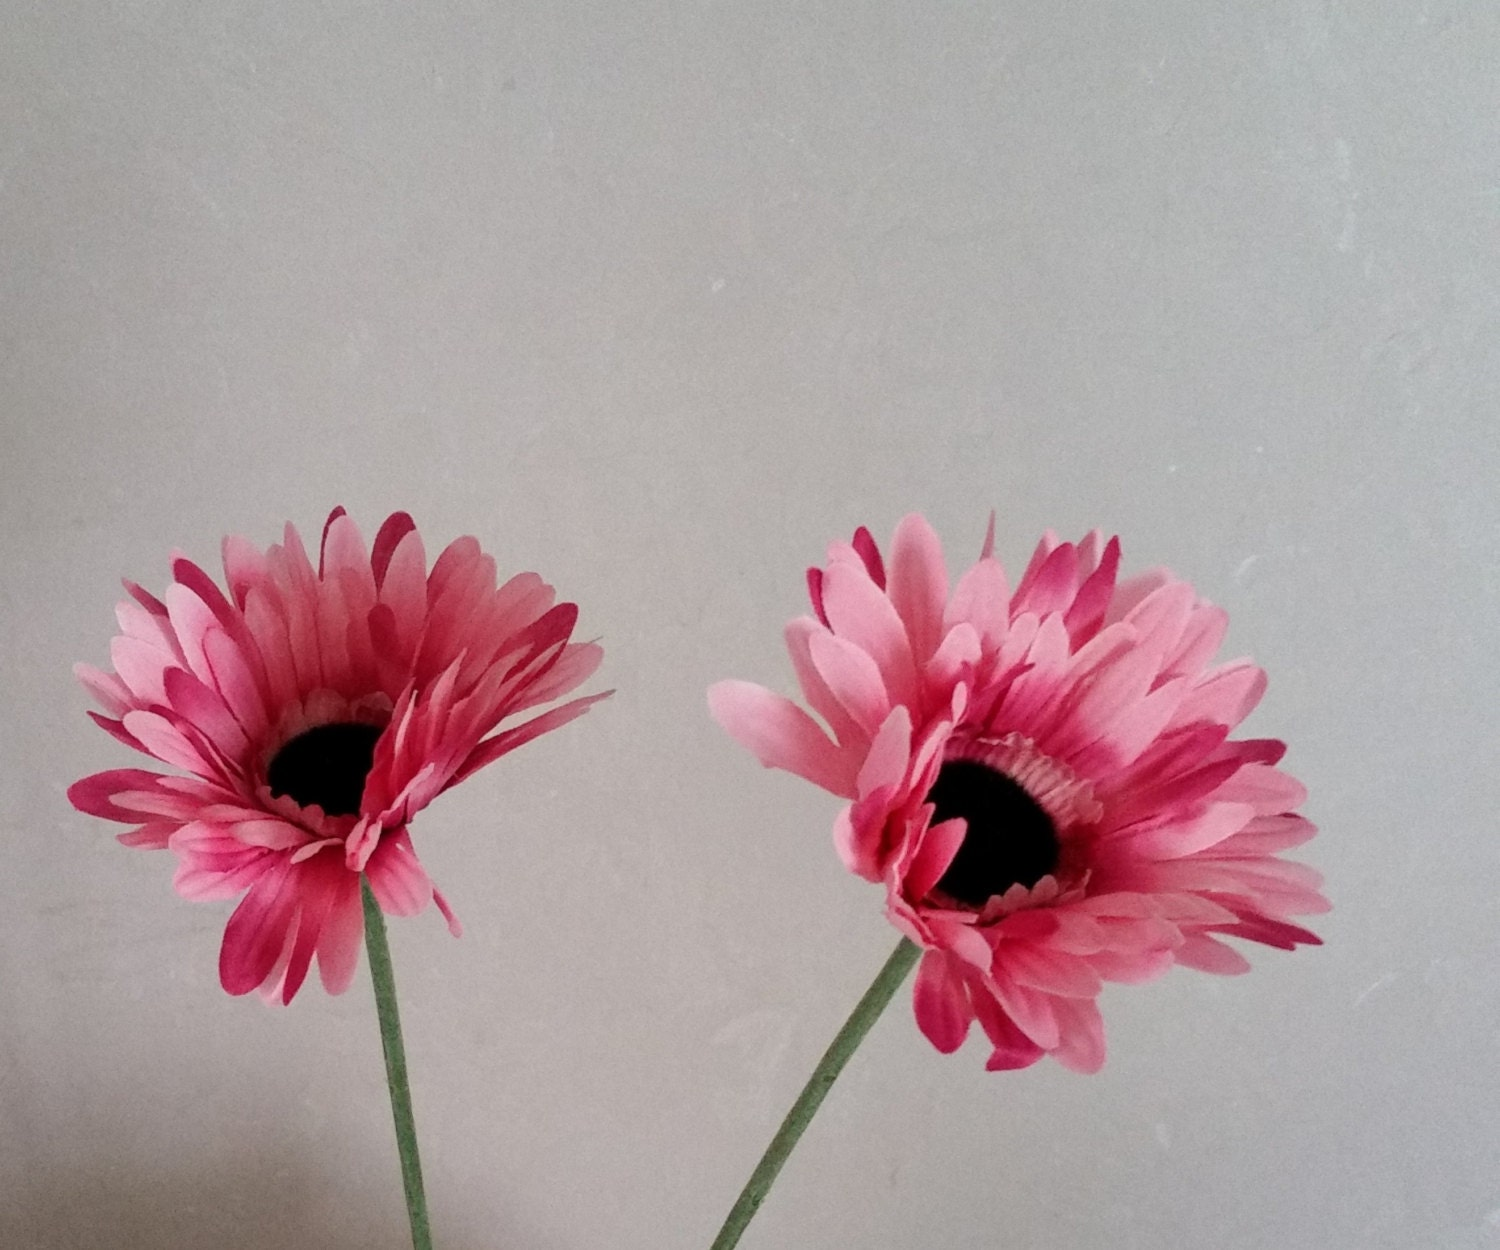 Making Your Own Wedding Flowers: Make Your Own Bridal Bouquet Silk Flower Supply Pink Gerbera